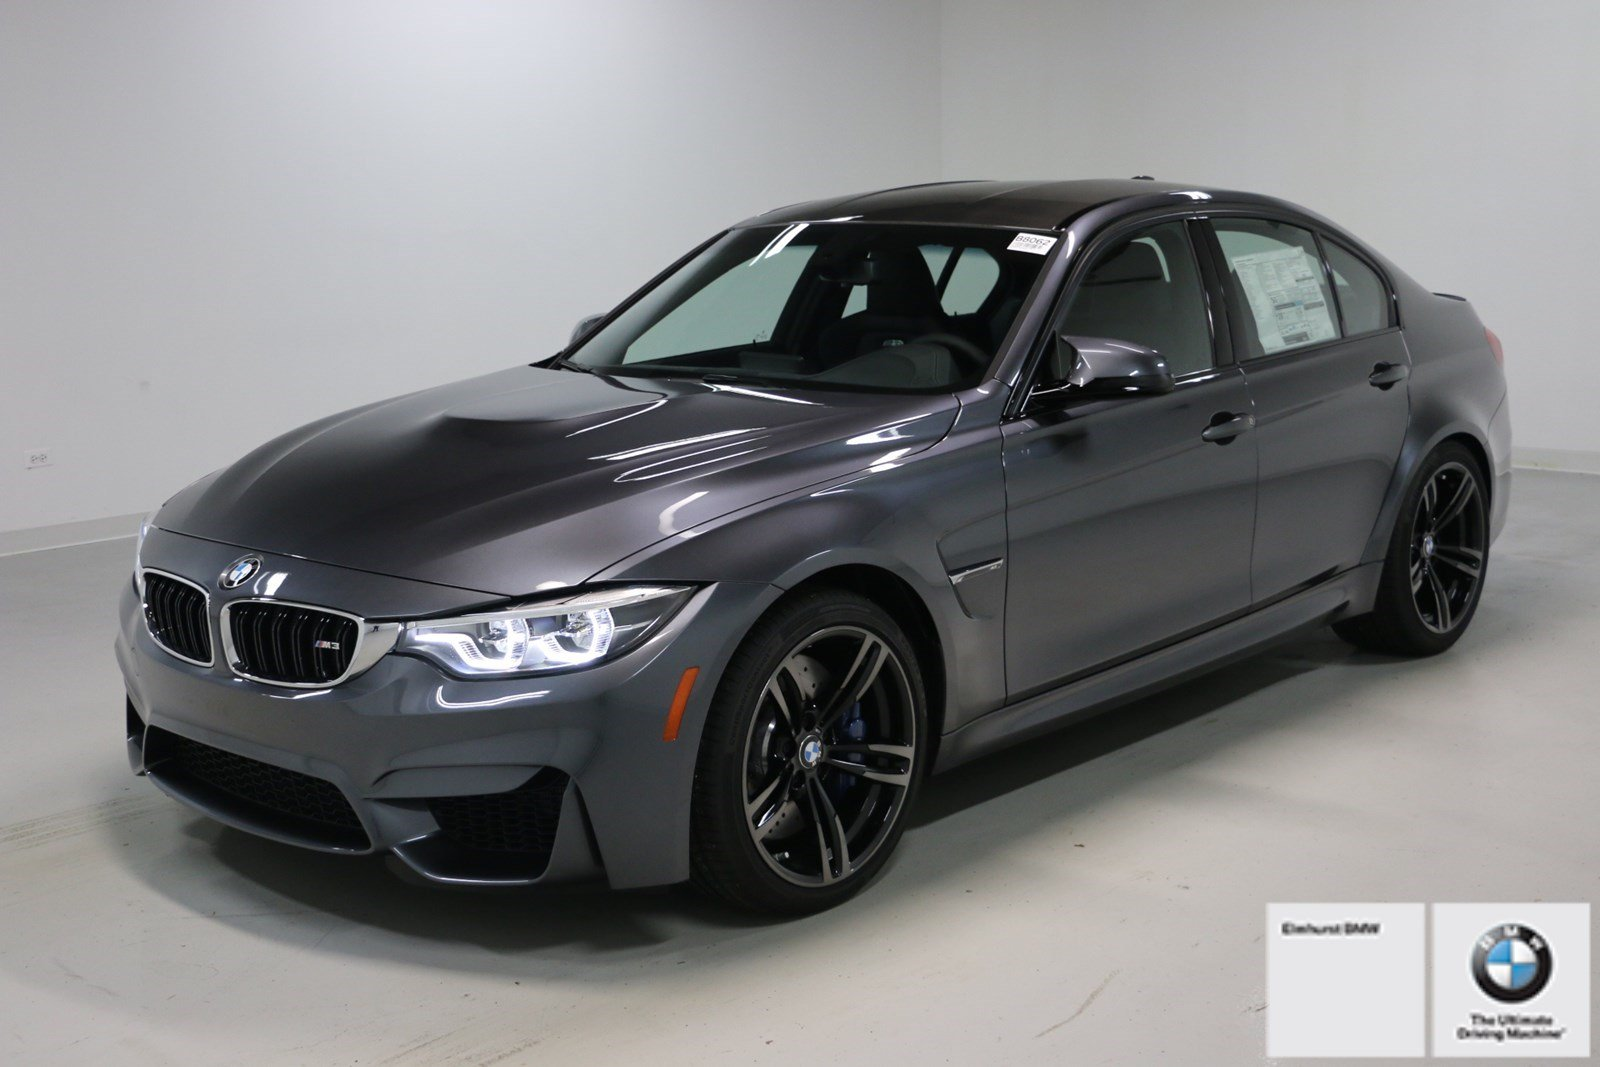 new 2018 bmw m3 4dr car in elmhurst b8062 elmhurst bmw. Black Bedroom Furniture Sets. Home Design Ideas